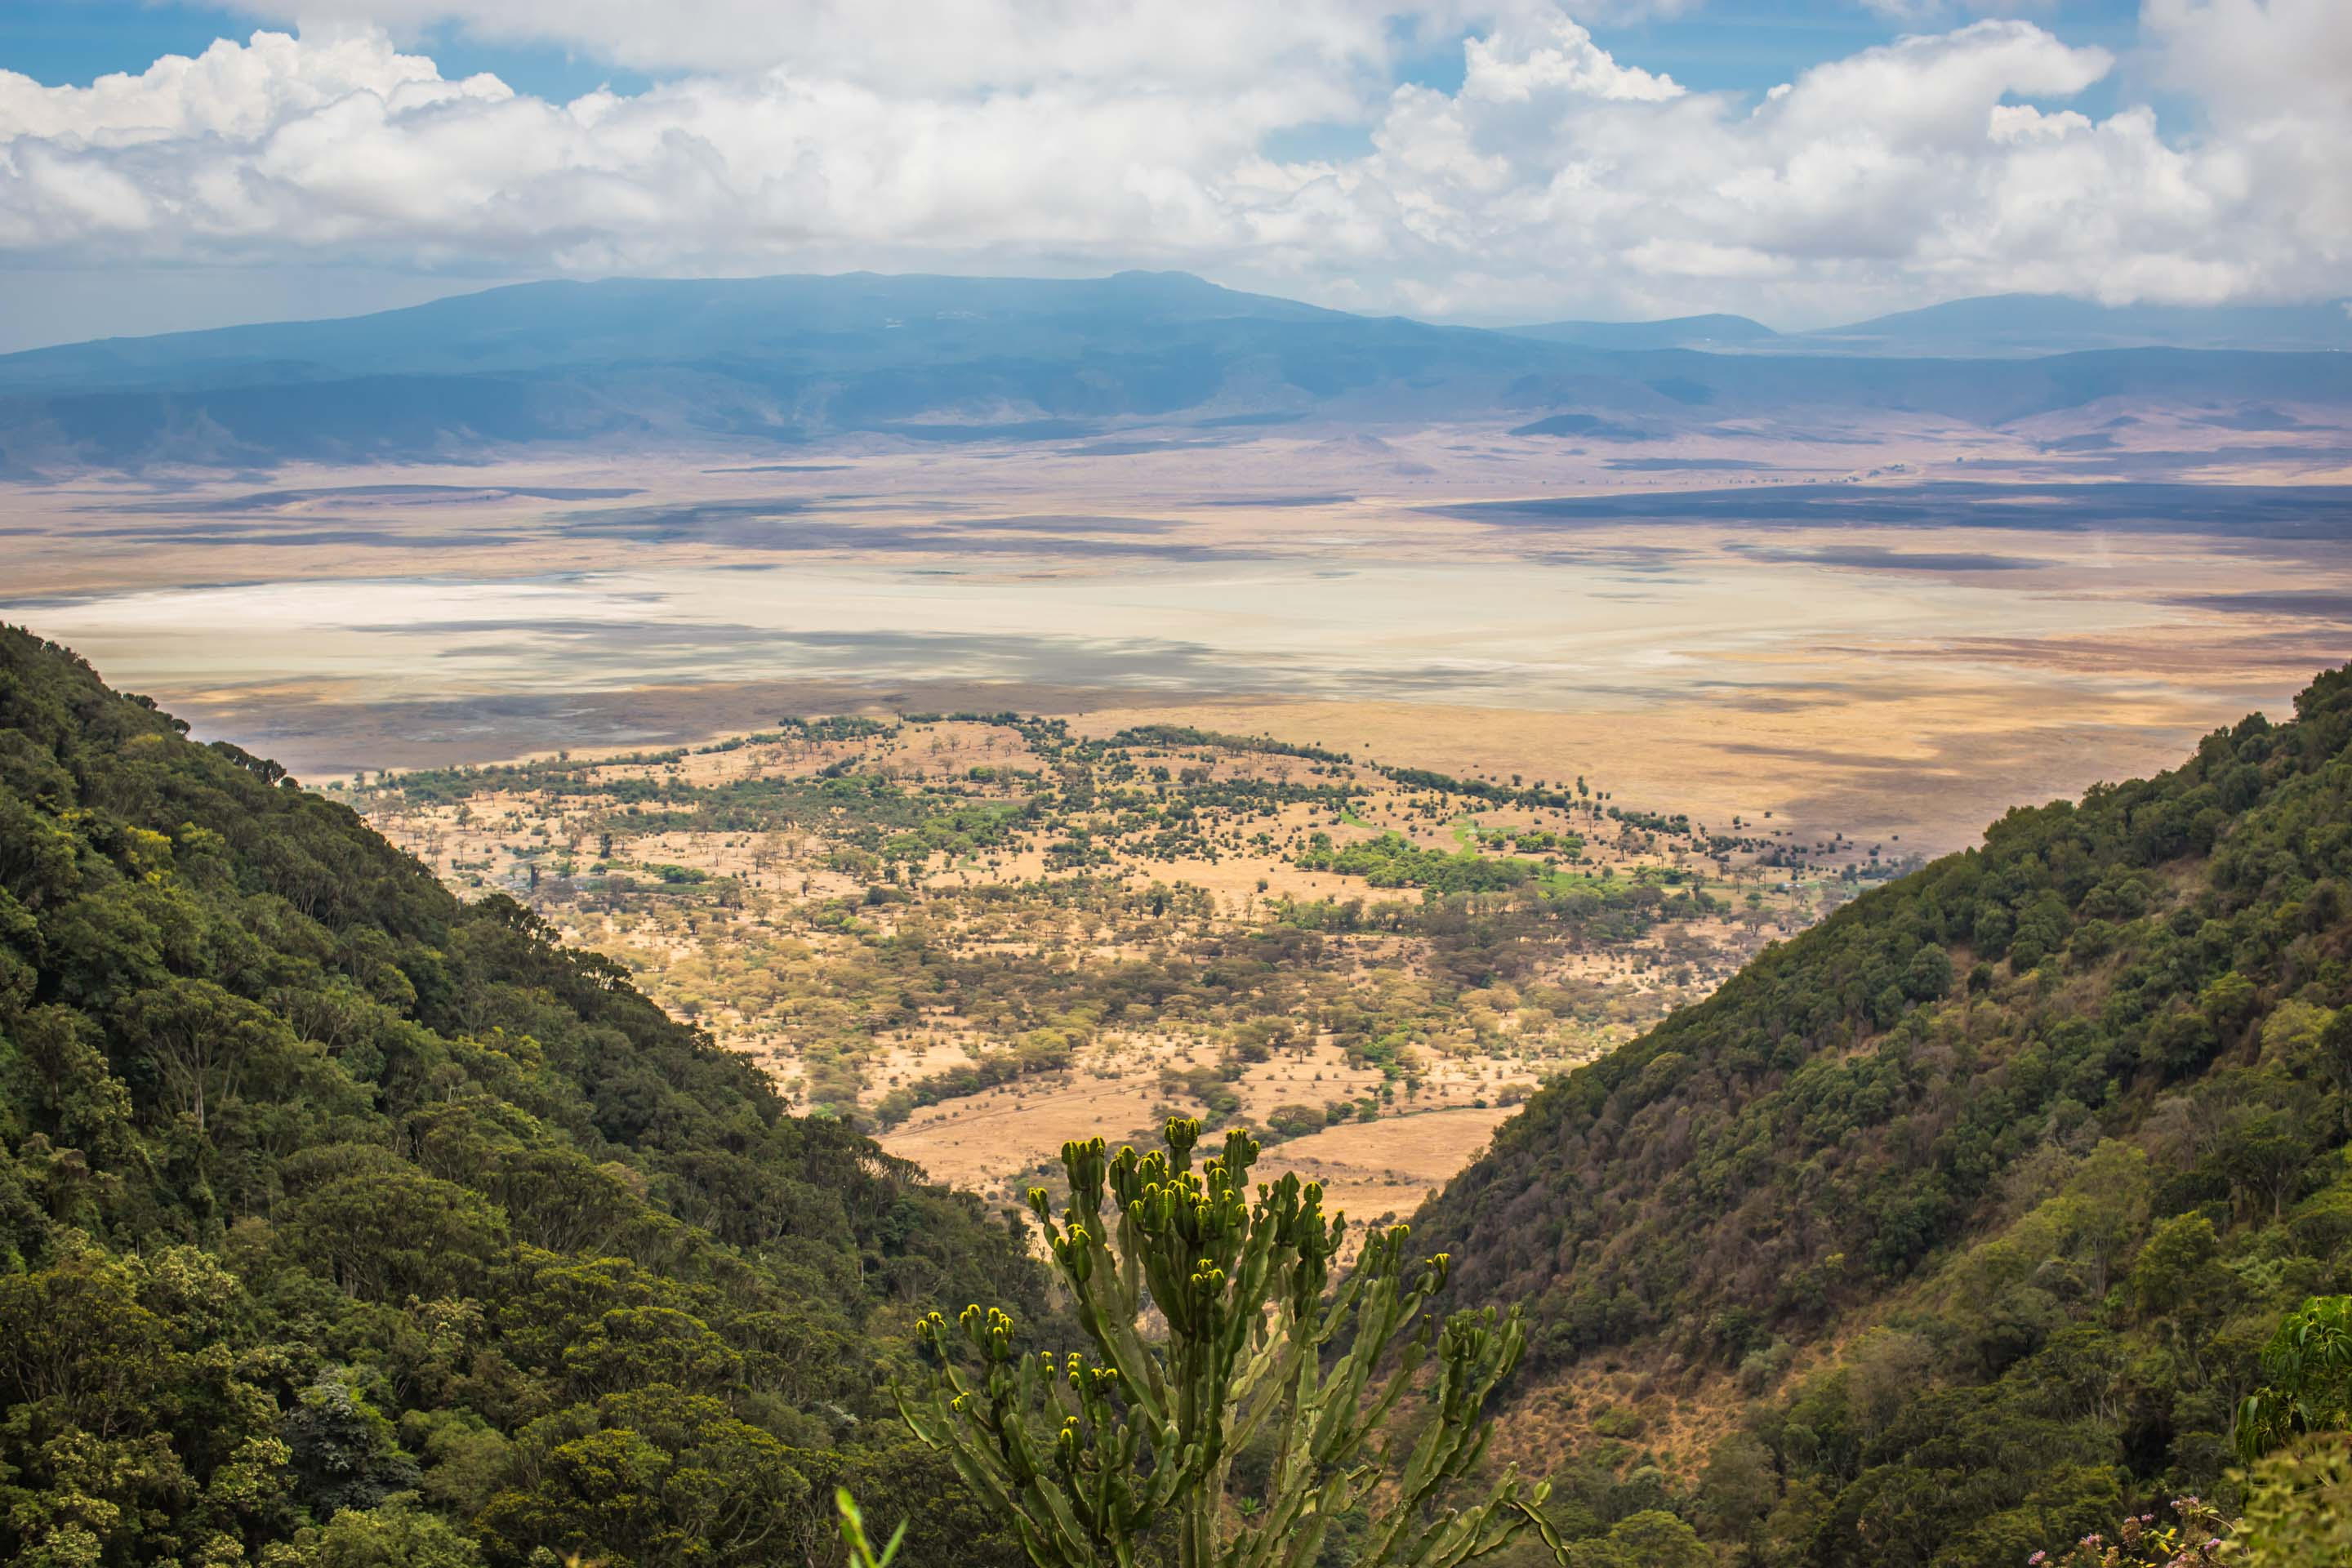 Sweeping views over the Ngorogoro crater